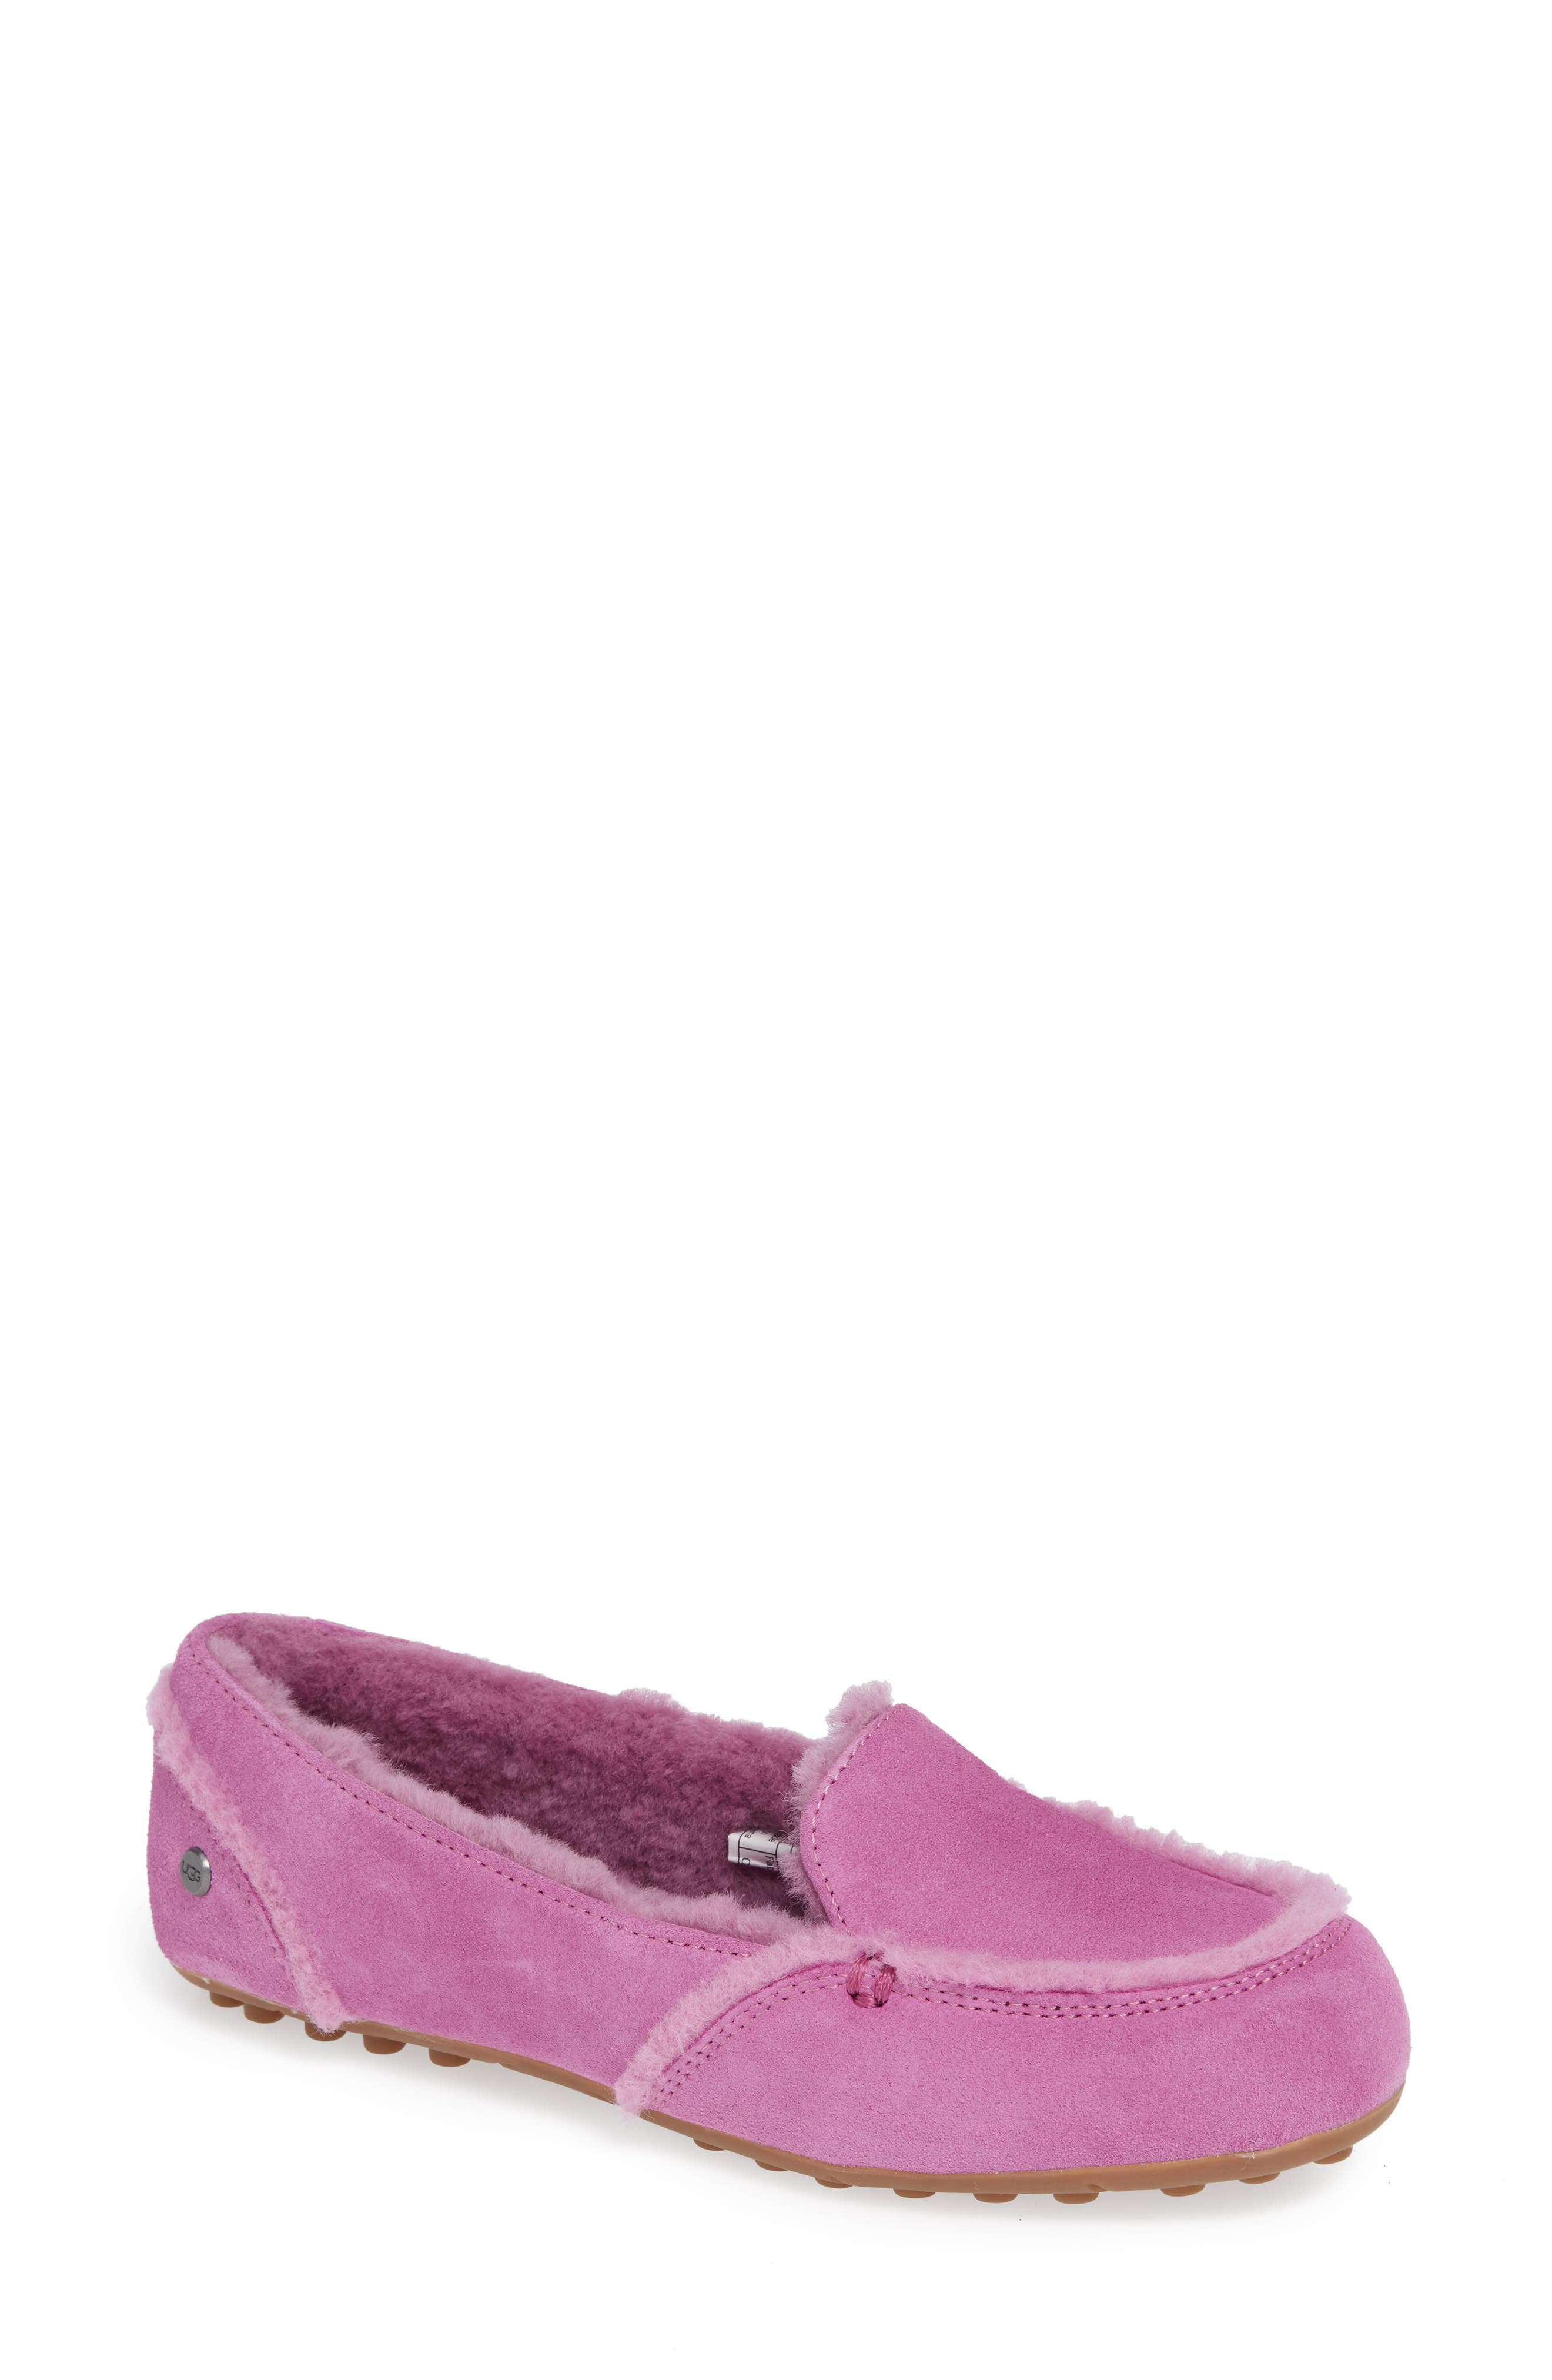 Hailey Slipper,                         Main,                         color, BODACIOUS SUEDE